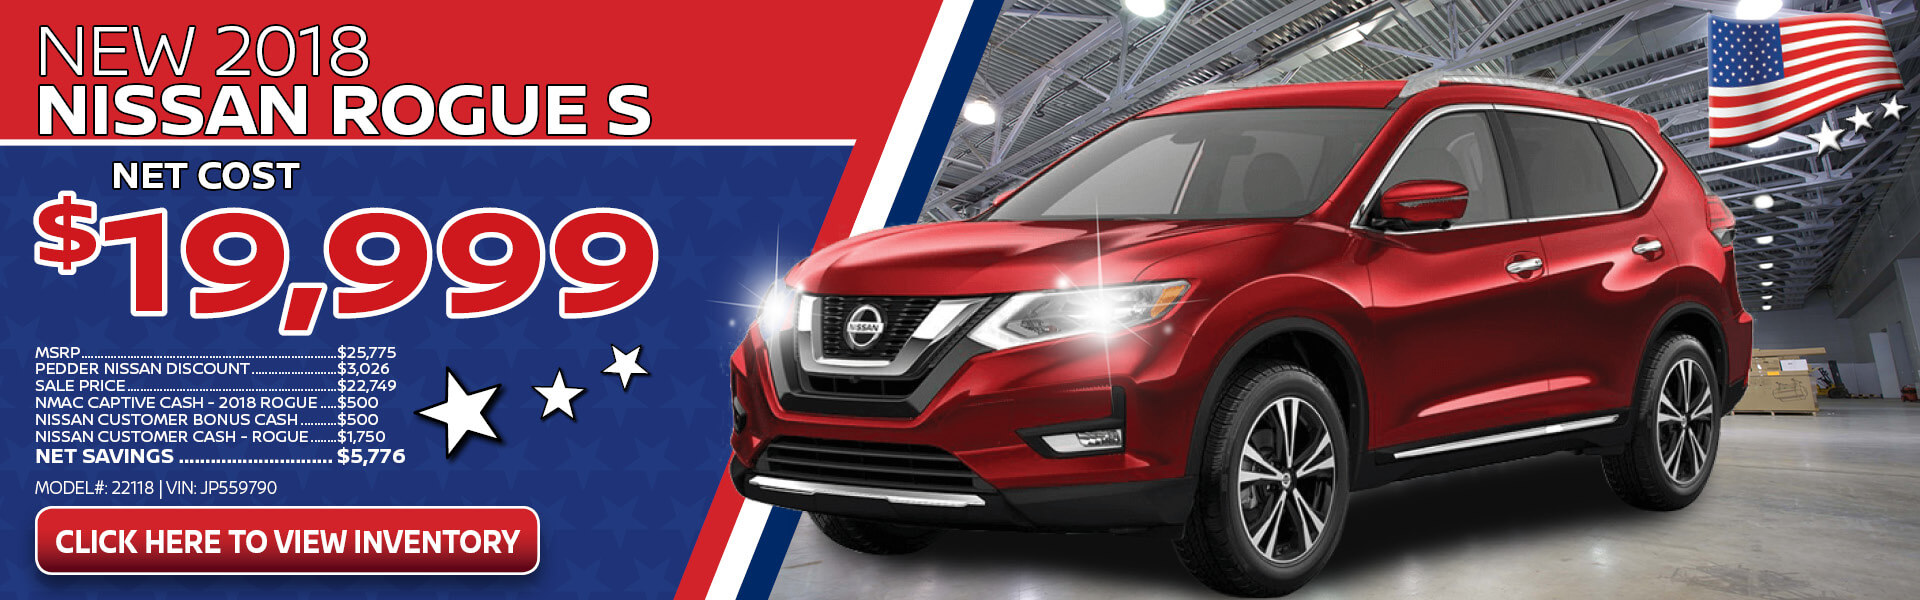 Nissan Rogue $19,999 Purchase